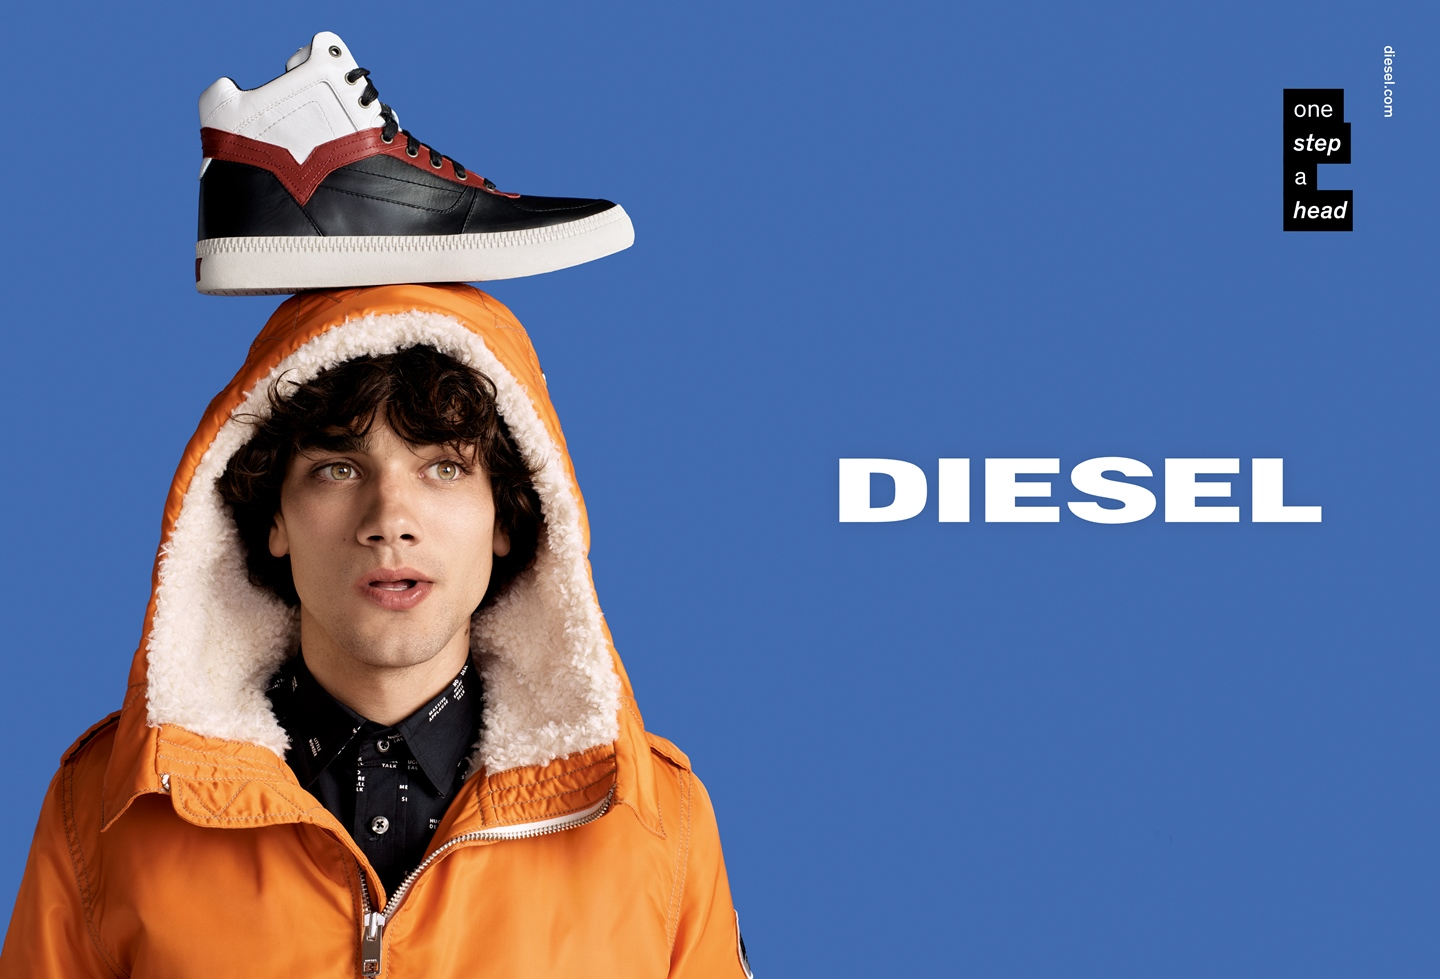 289209_623205_diesel_campaign_fw16_atl_adventure_single_male_dps_highres